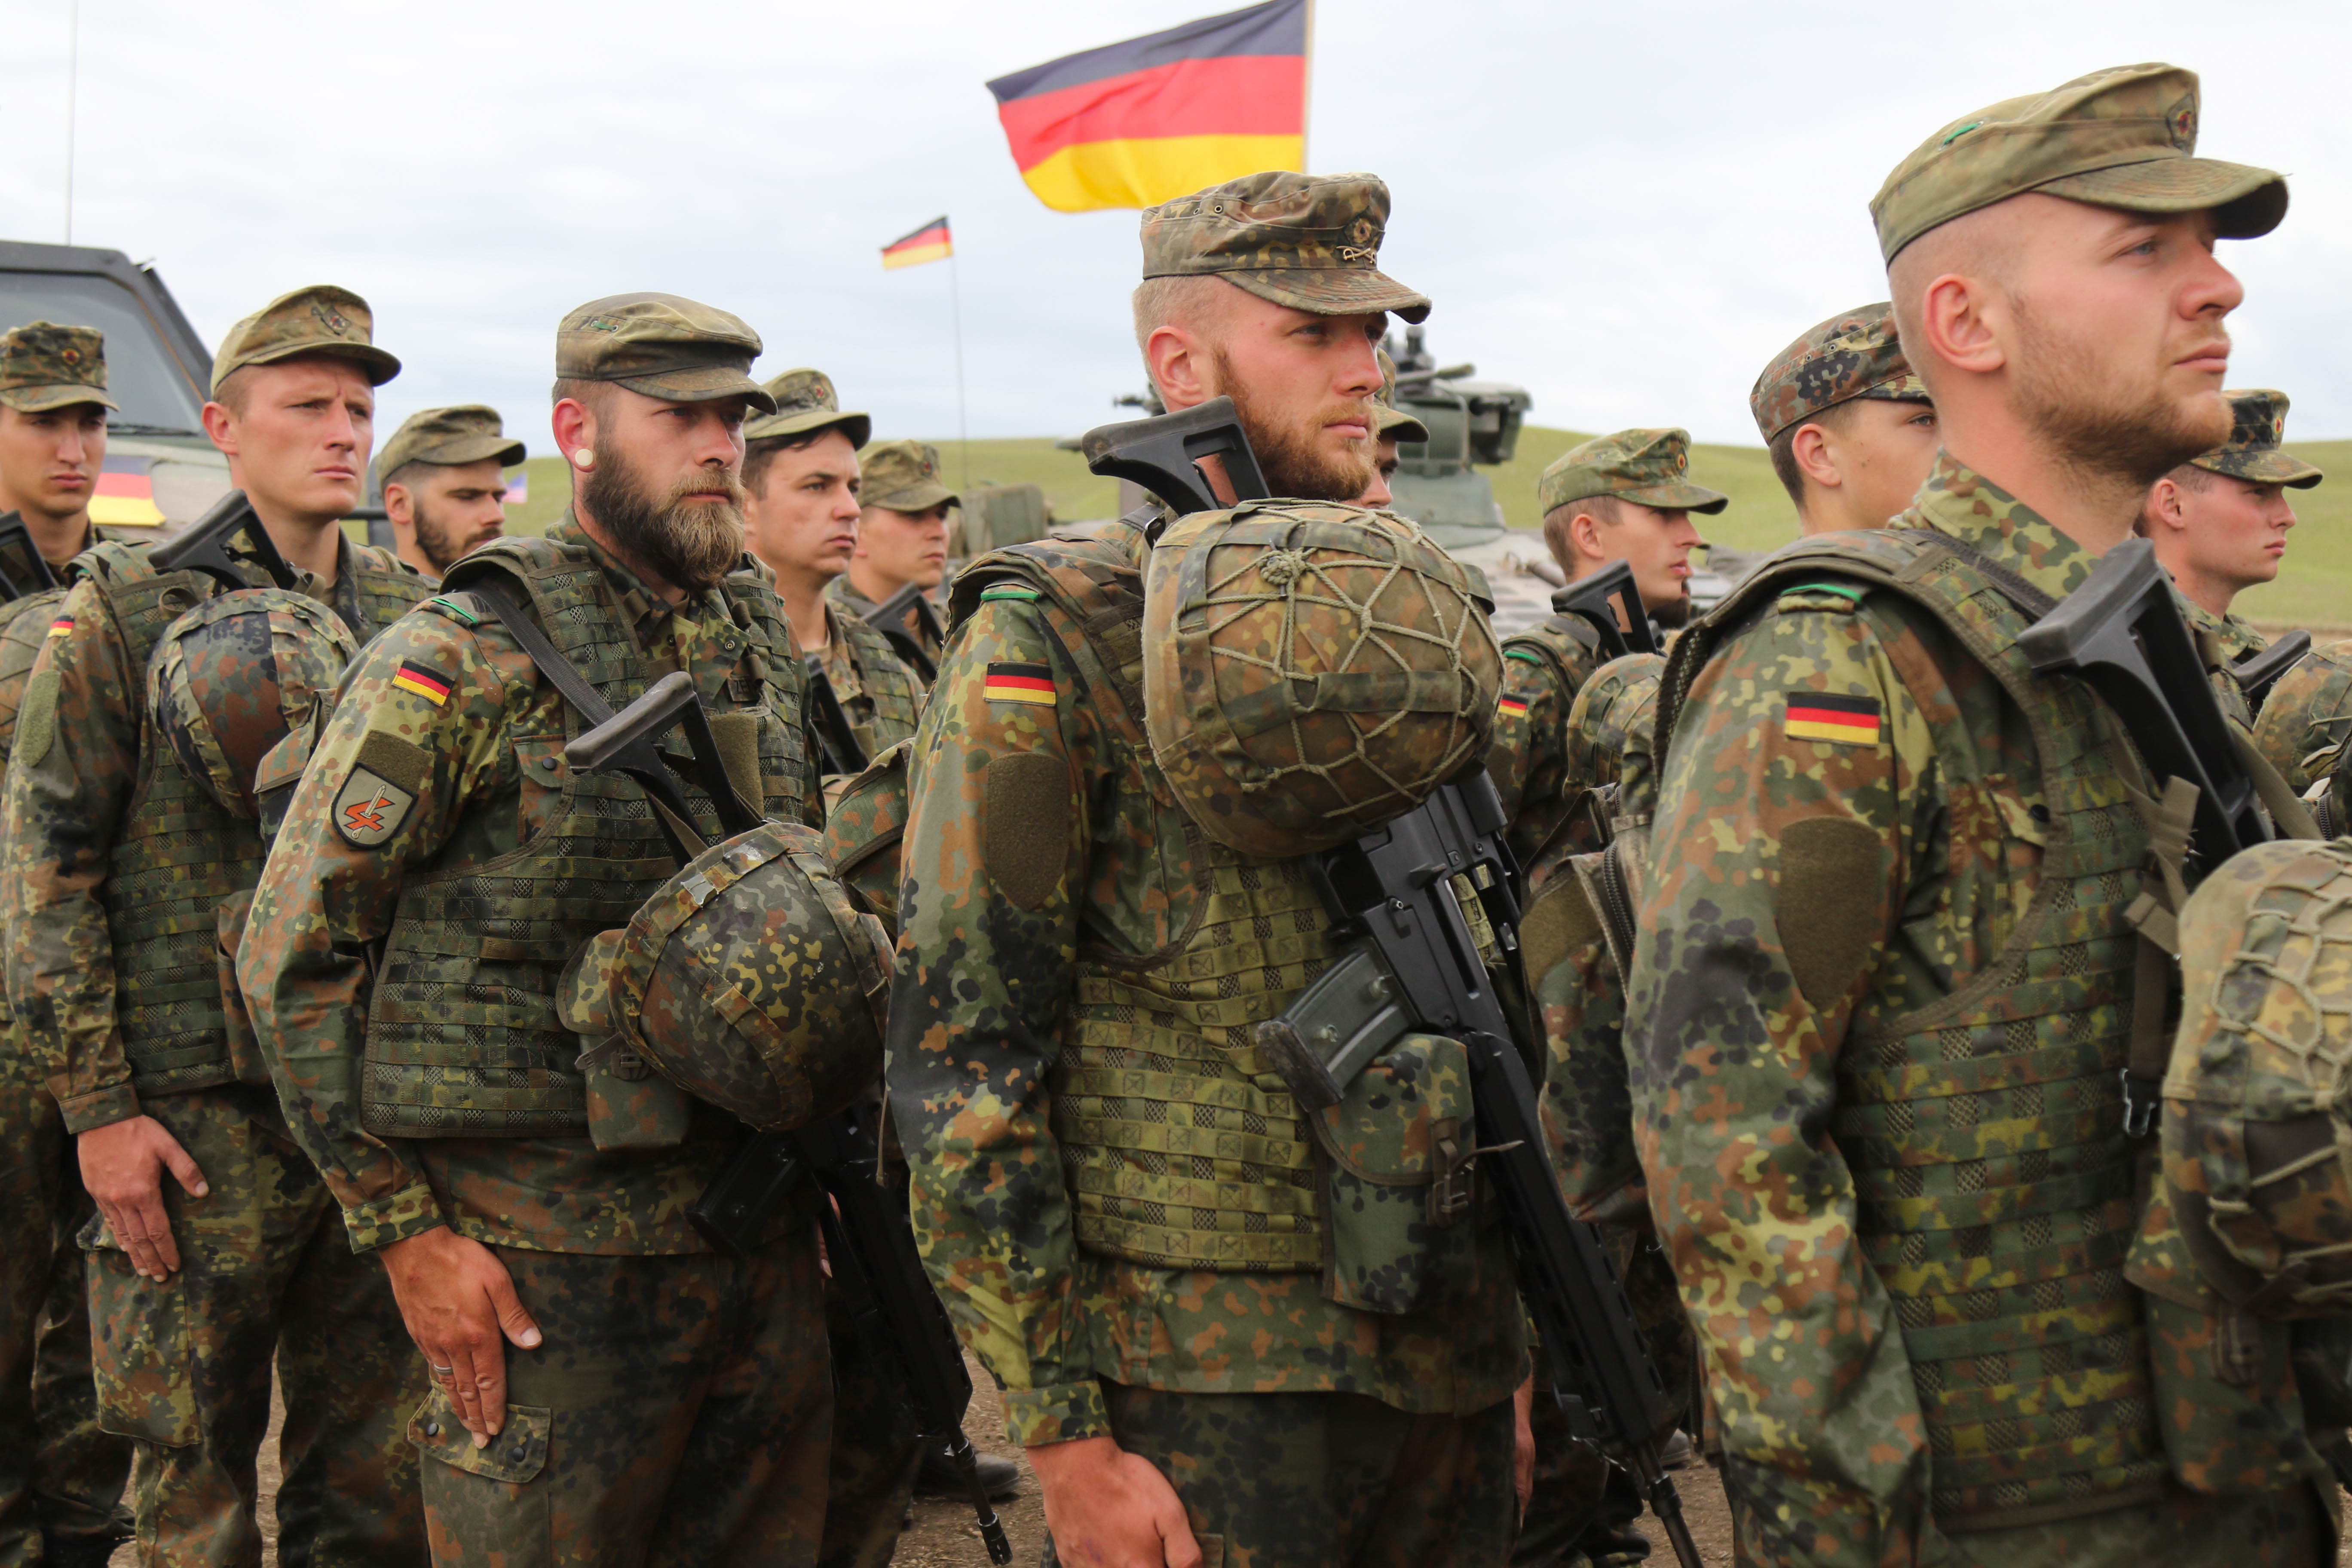 German army soldiers stand at attention for the Georgian natinal anthem during the closing ceremony for Noble Partner 18 at Vaziani Training Area, Georgia, Aug. 15, 2018. Noble Partner 18 was a cooperatively-led multinational training exercise in its fourth iteration which supported the training of Georgian Armed Forces' mechanized and Special Operation Forces, U.S. Regionally Aligned Forces, the U.S. Army and Air National Guard from the state of Georgia, and 11 other participating nations. (U.S. Army photo by Sgt. Kris Bonet)